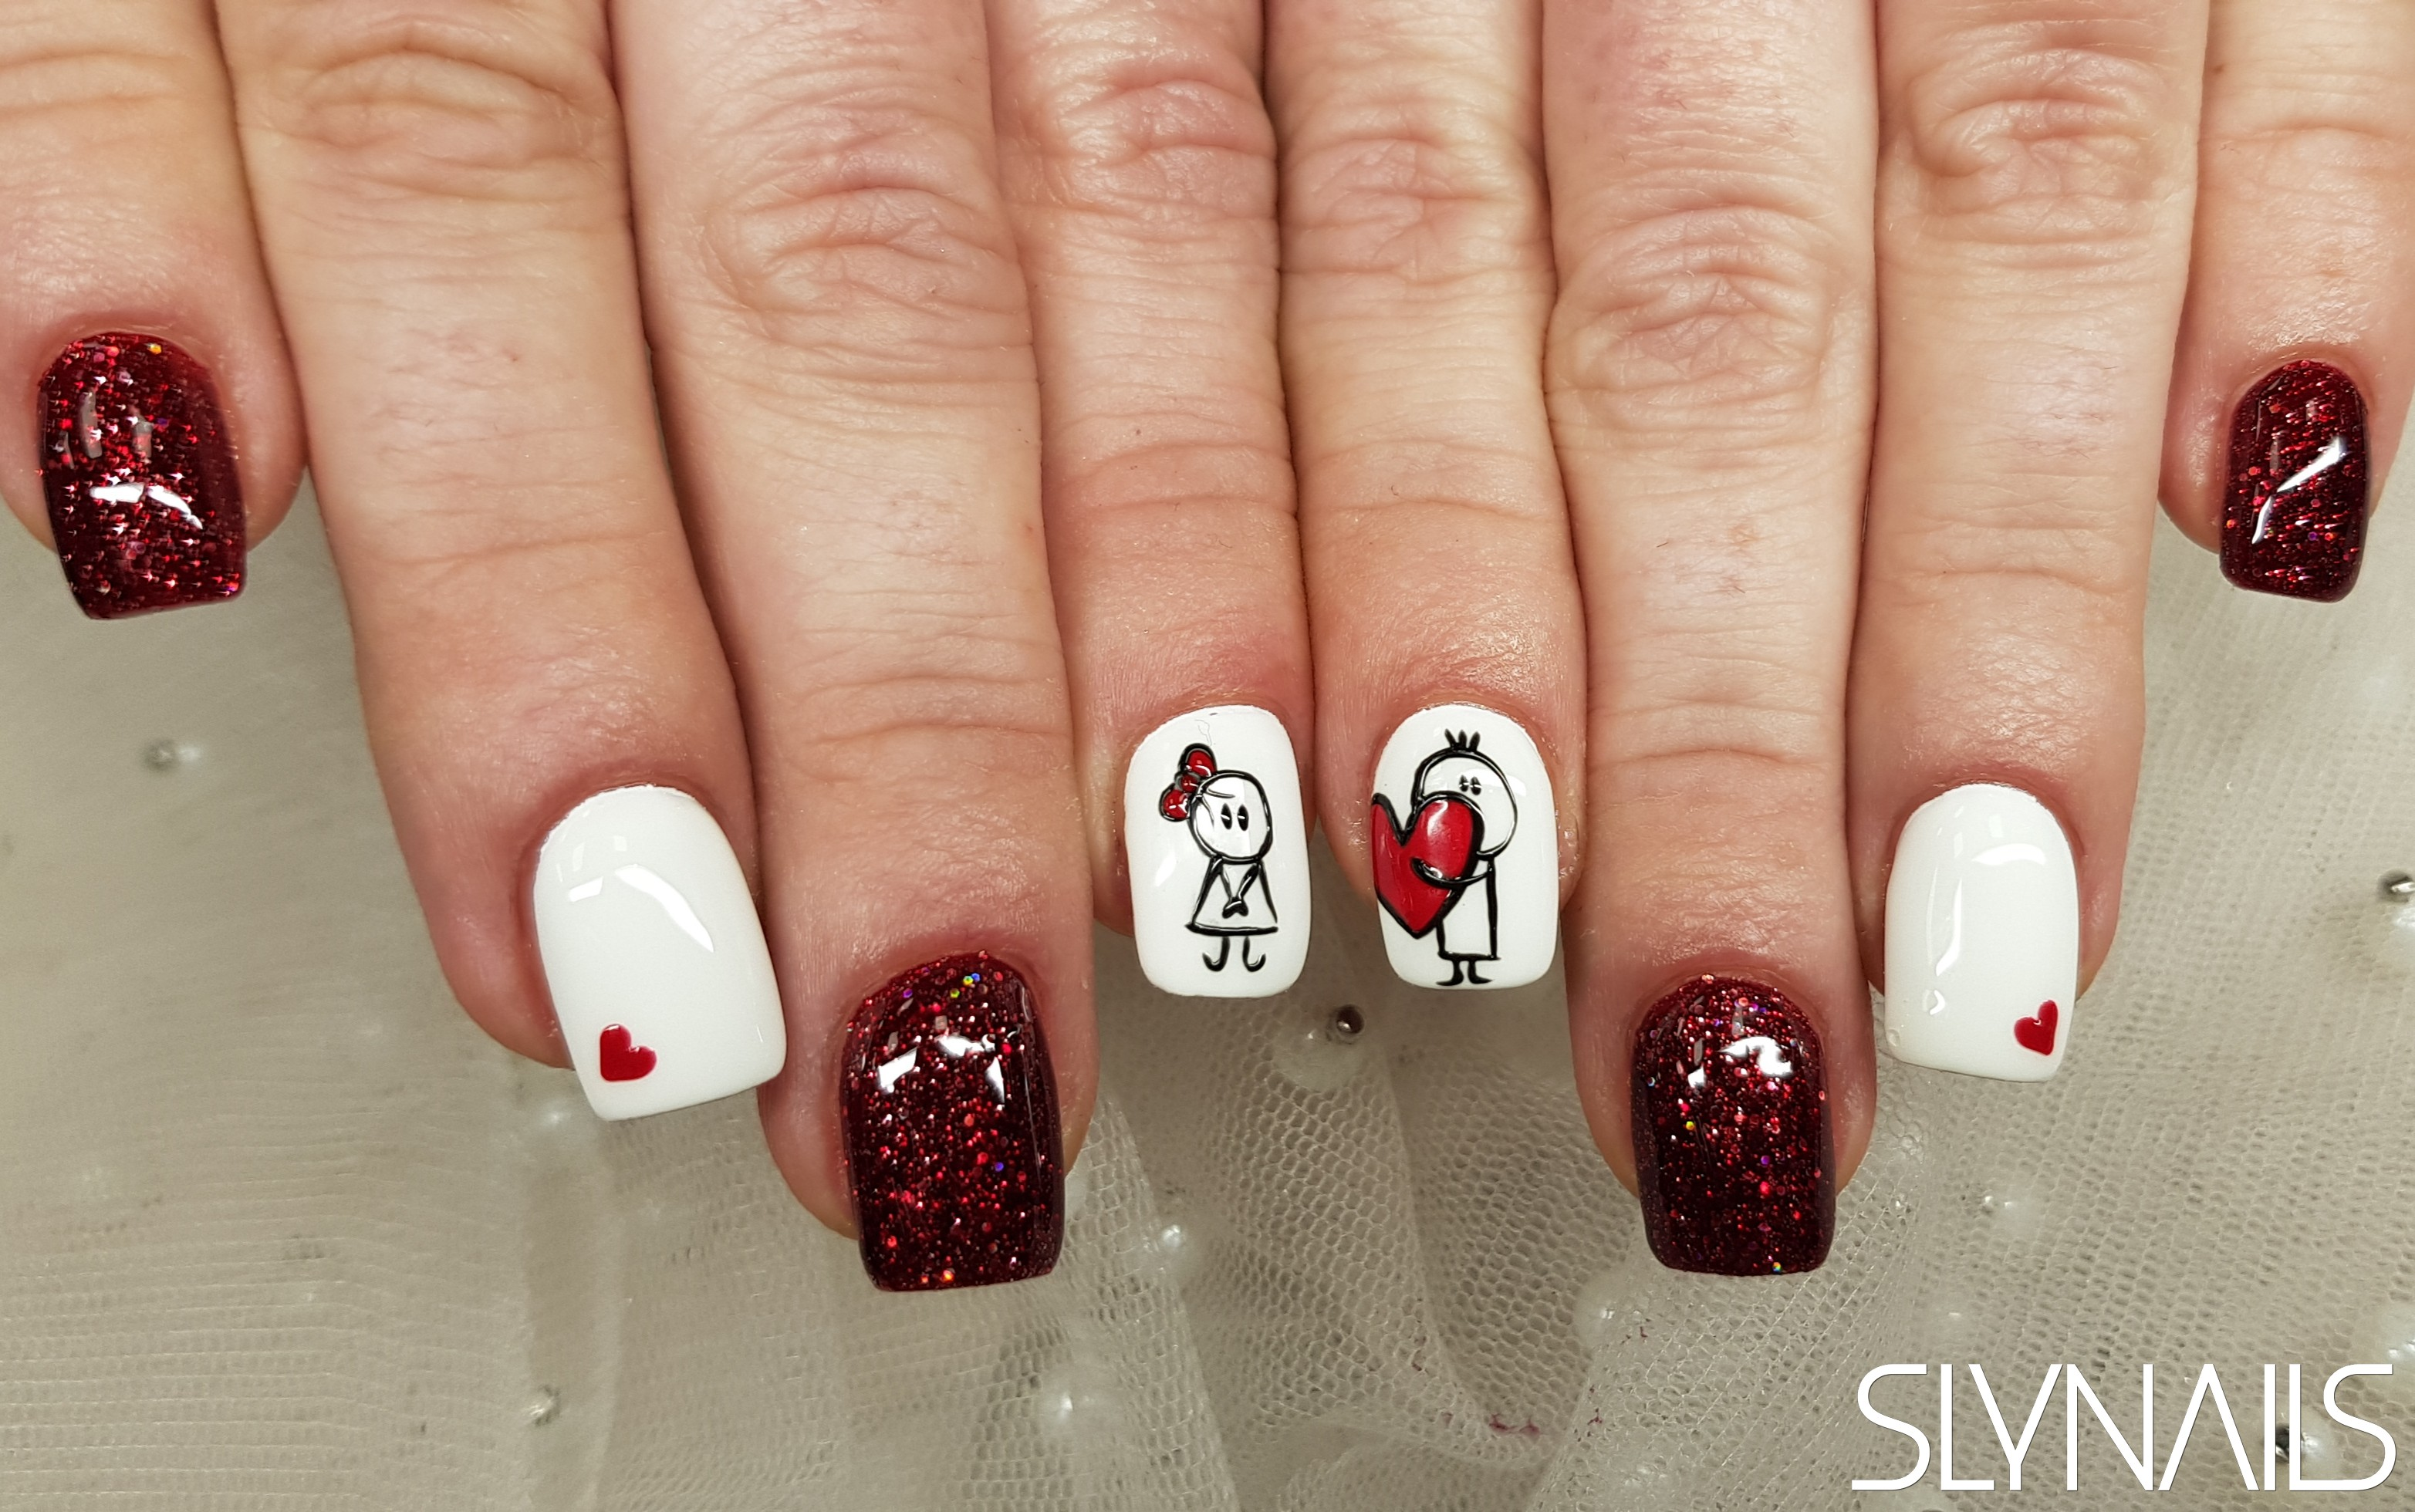 Nail extension, Claret, White, One color, Square, Art gel decorations, Valentine's Day